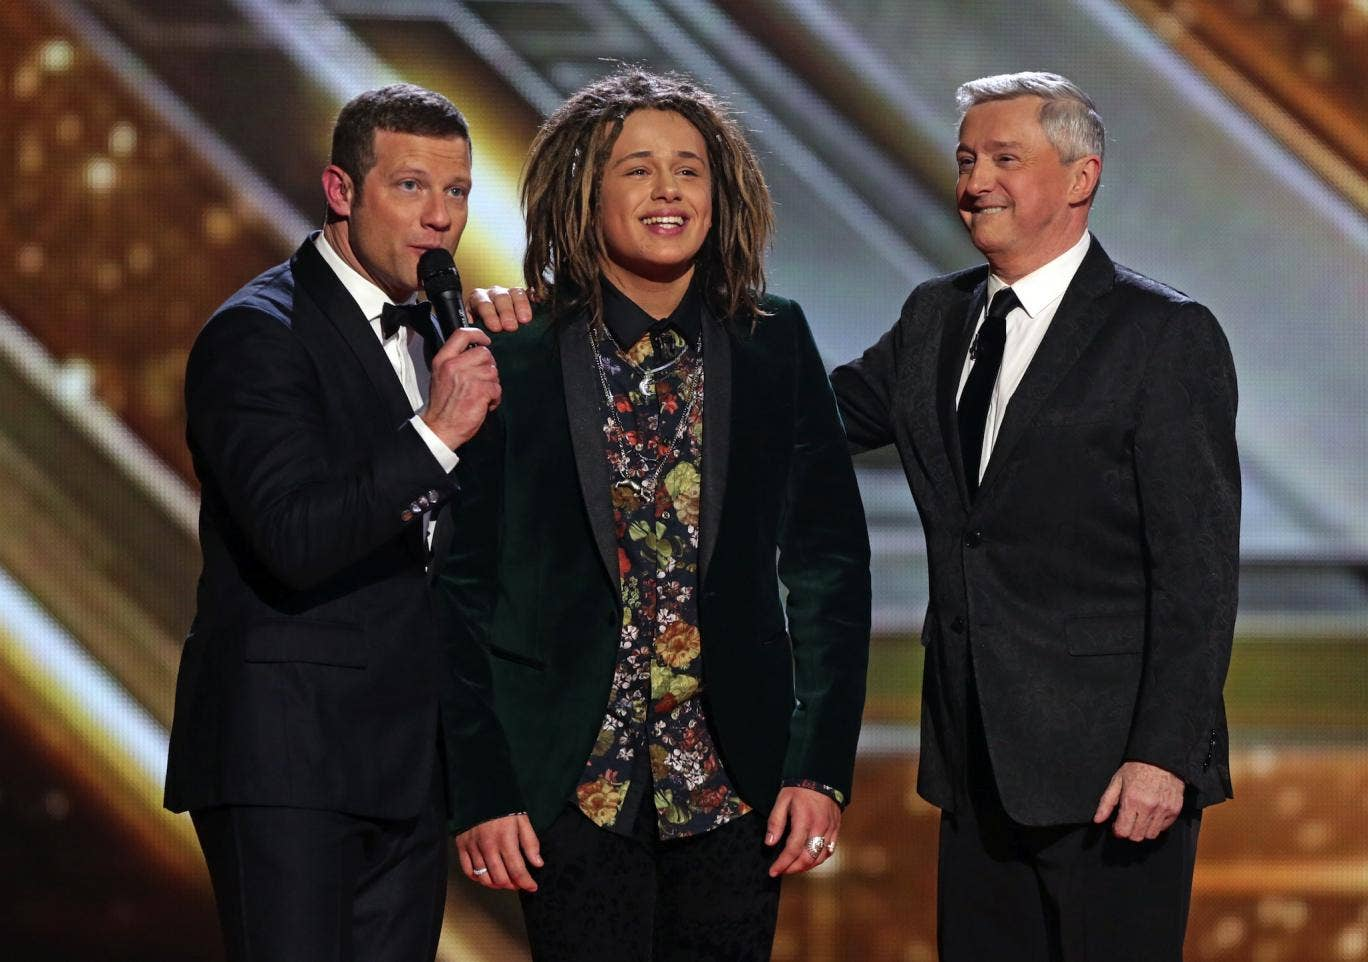 Luke Friend has placed third in the tenth series of The X Factor